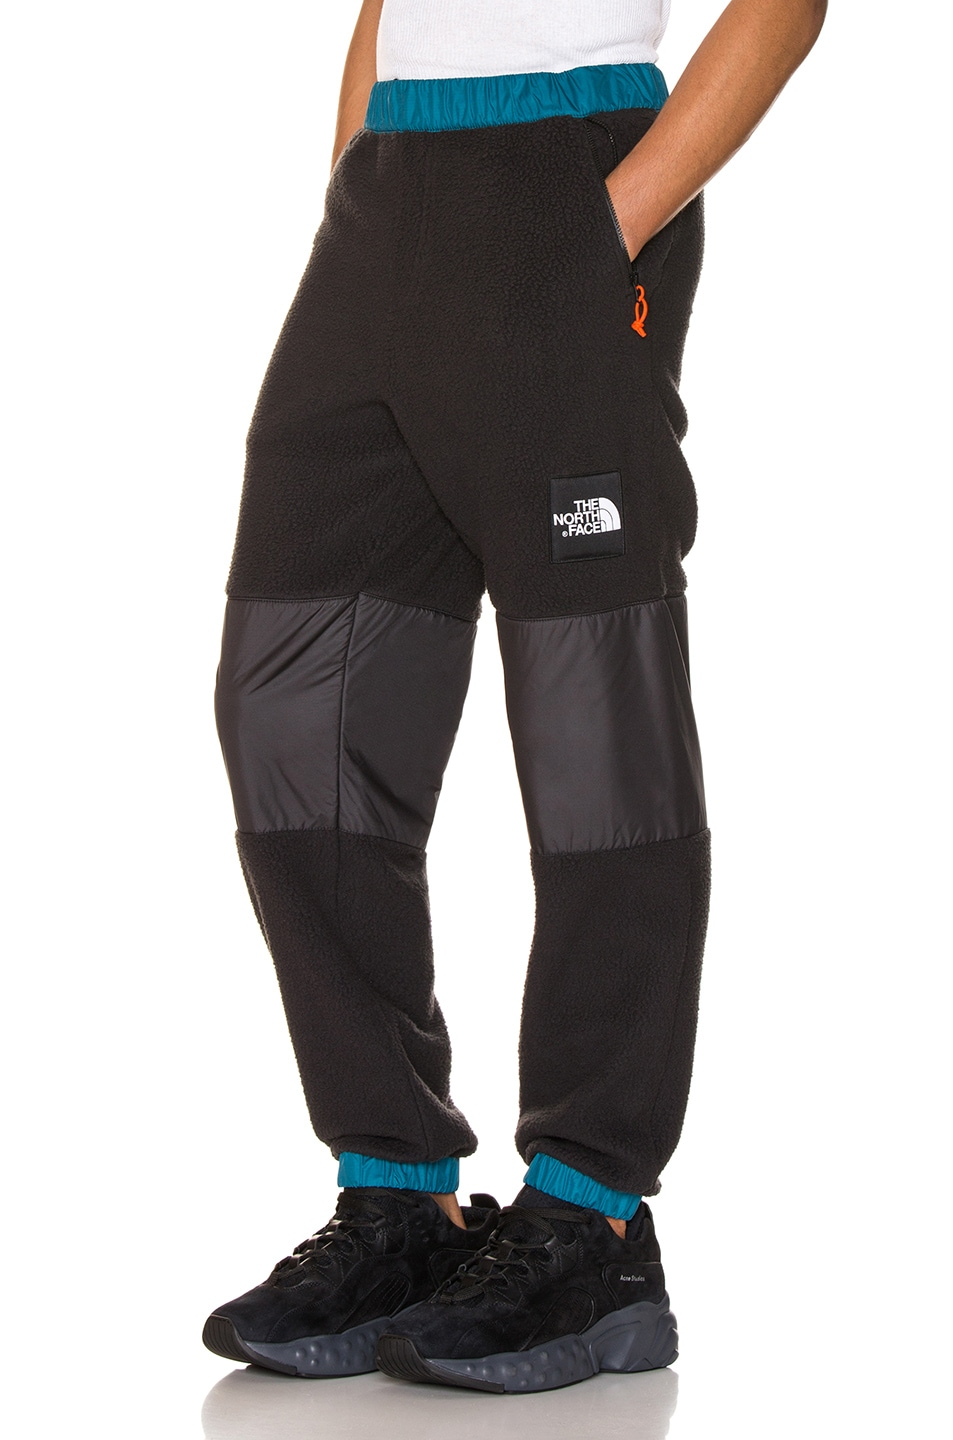 Image 1 of The North Face Black Box Denali Fleece Pant in Blue Coral & TNF Black